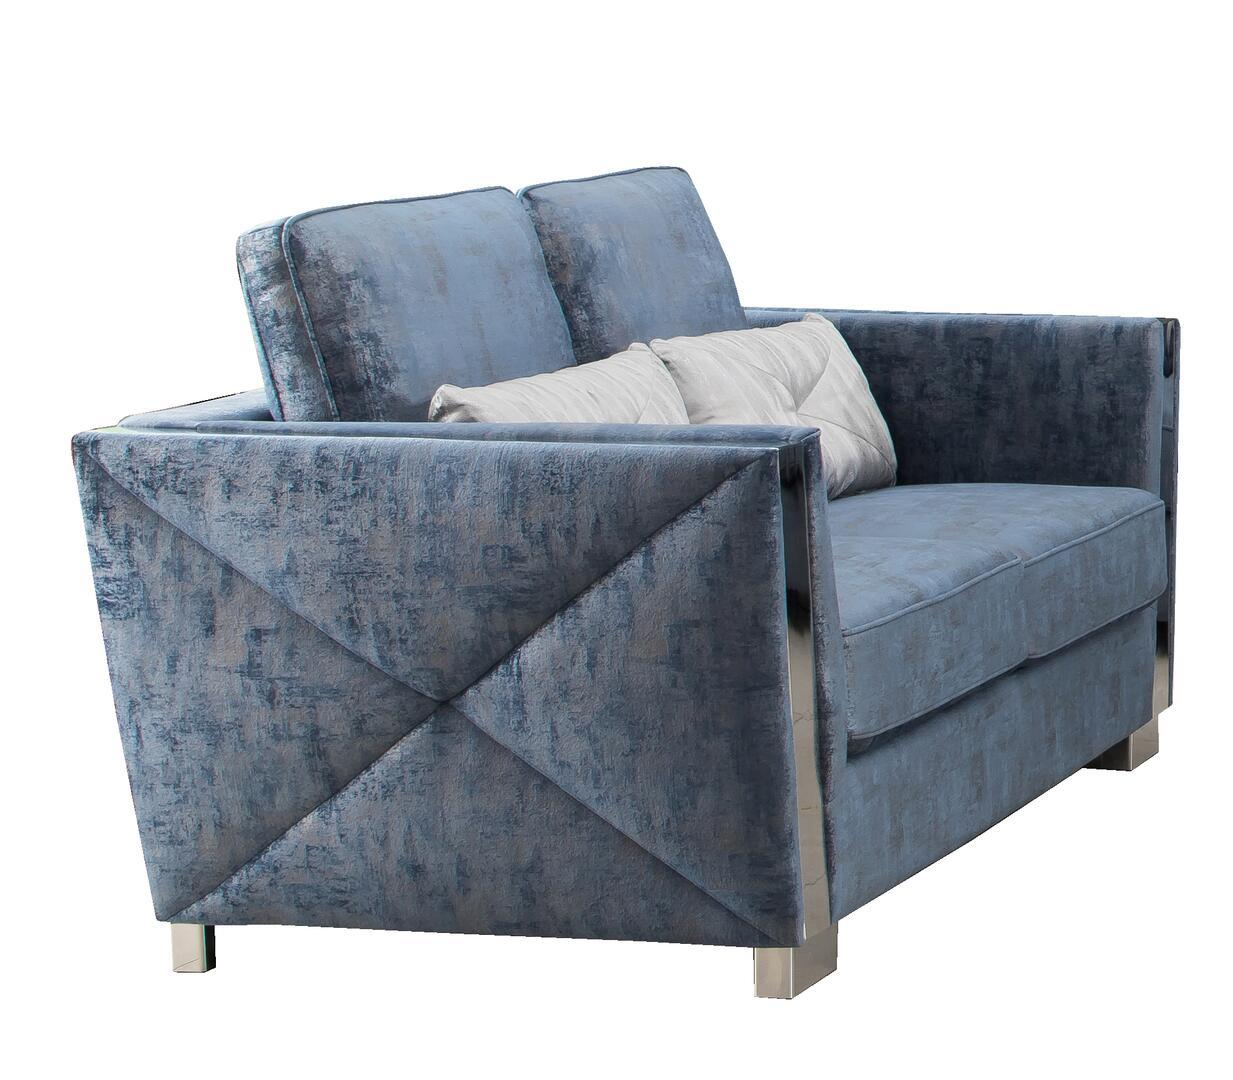 Modern Blue Fabric Loveseat 1 pcs Cosmos Furniture 3036BLKIN